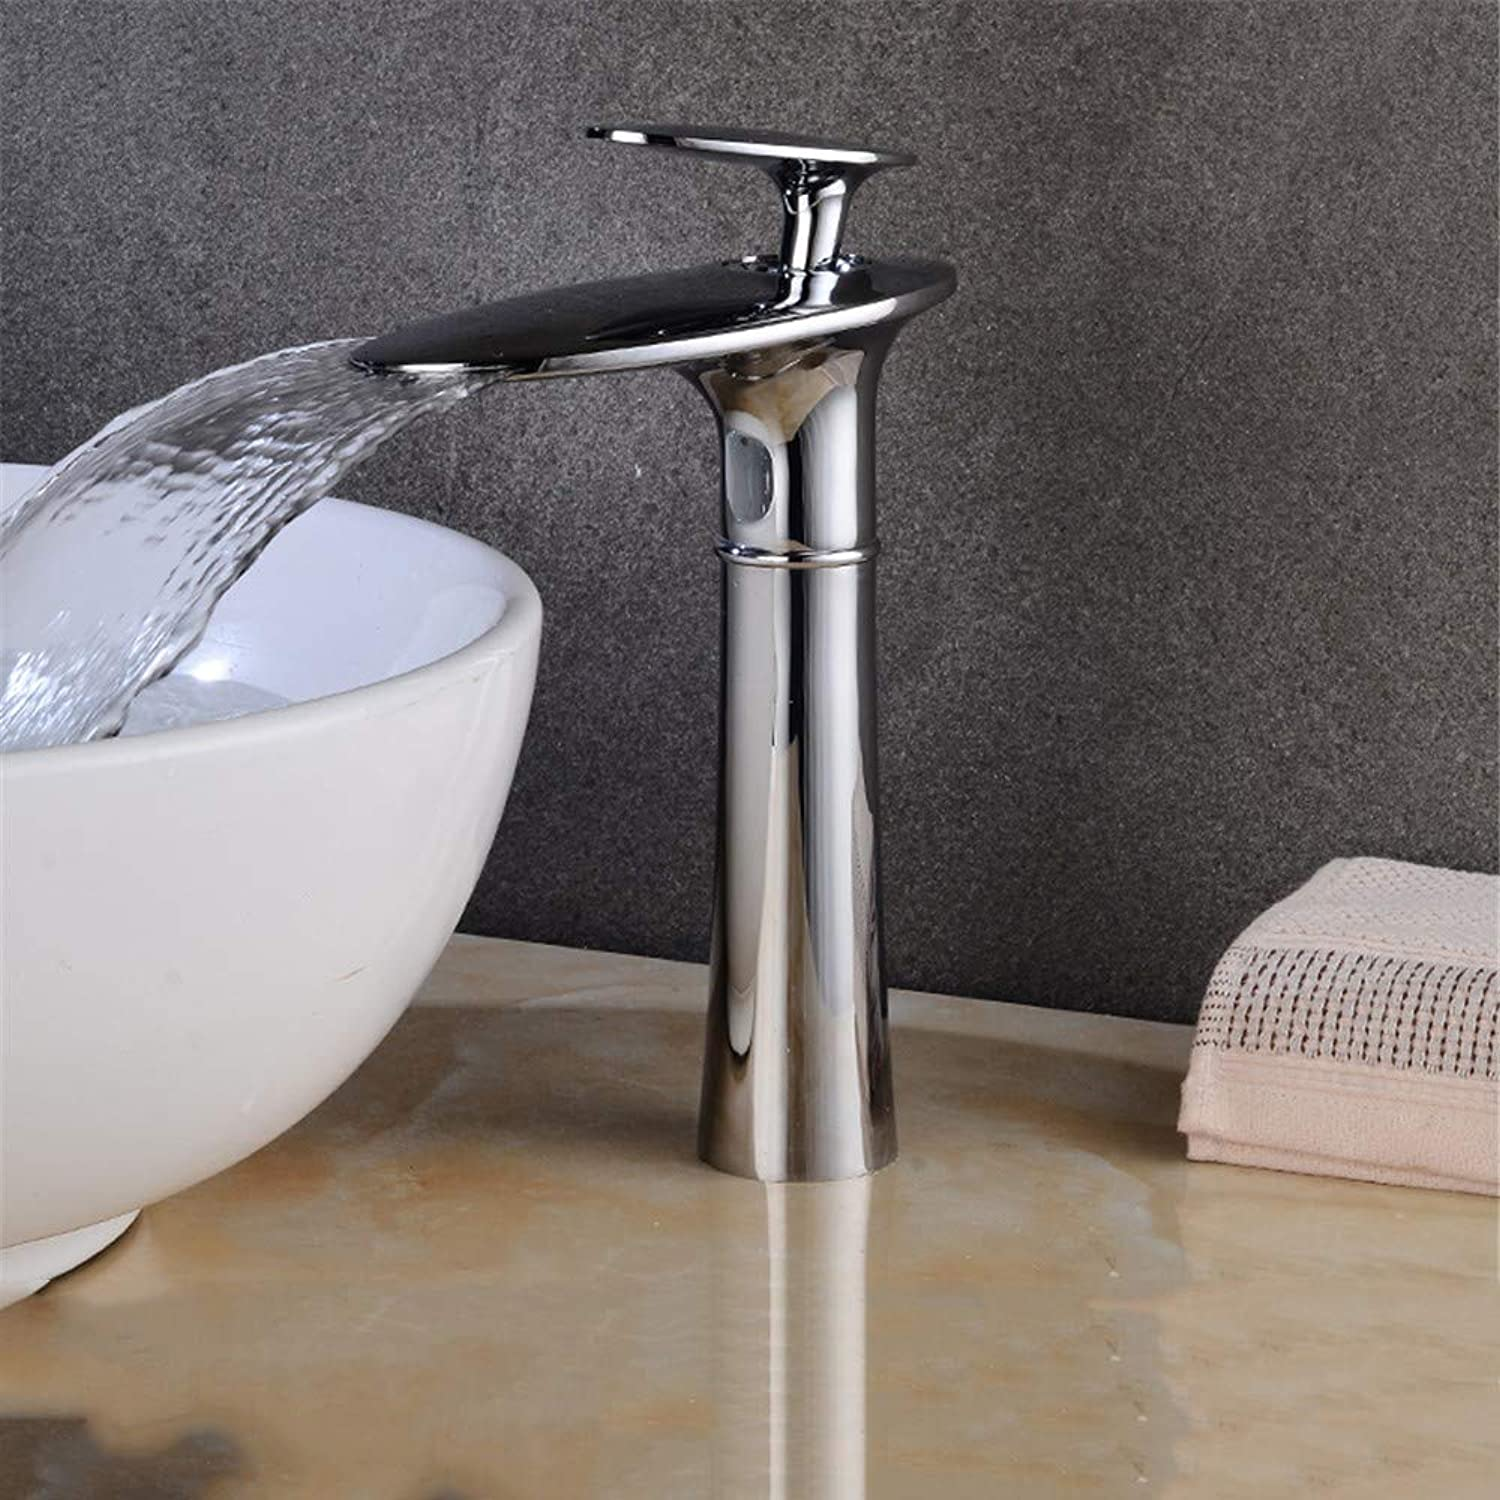 Waterfall Full Copper Basin Faucet, Table Down Basin Faucet, hot and Cold Faucet,C-High